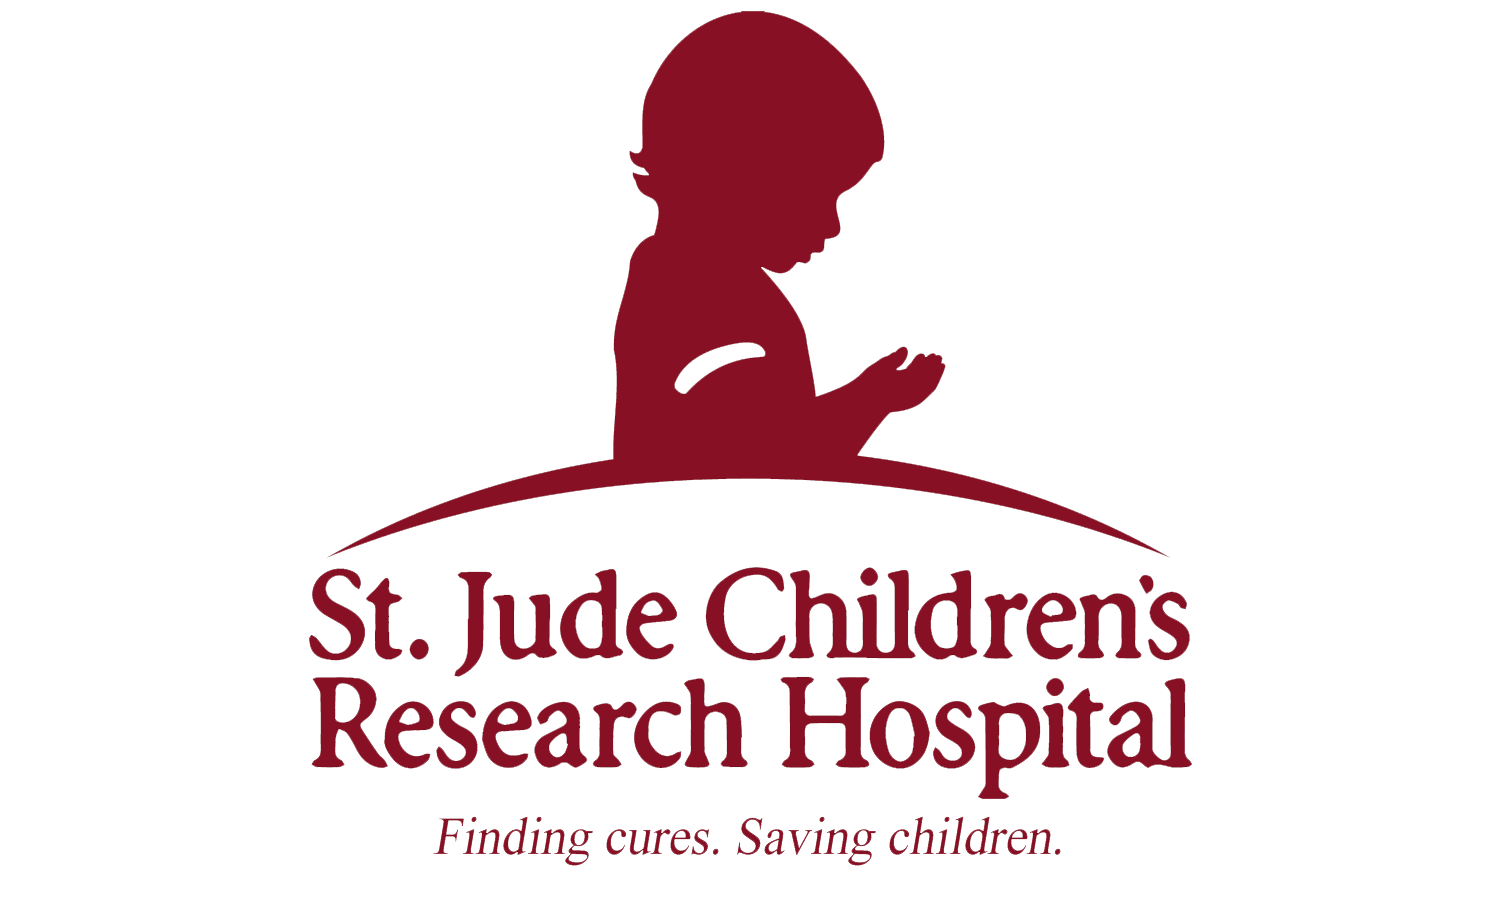 St. Jude Children's Research Hospital's logo